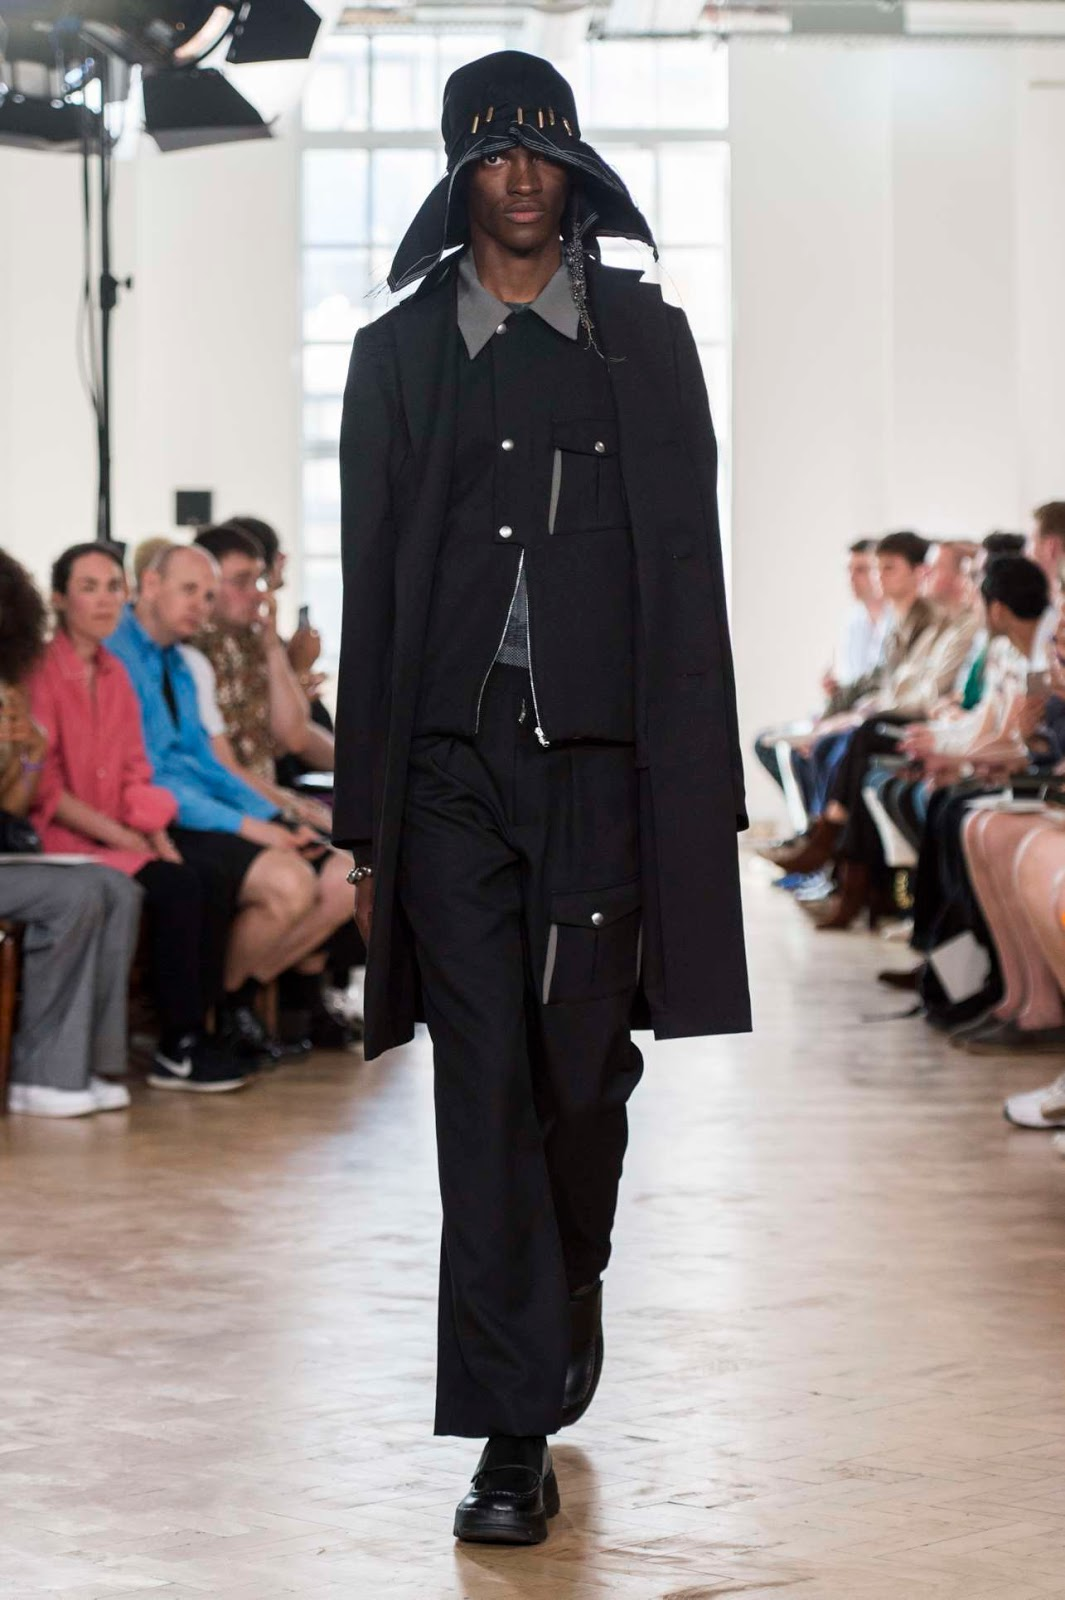 31173a07fed4 Kiko Kostadinov Spring-Summer 2019 - London Fashion Week .